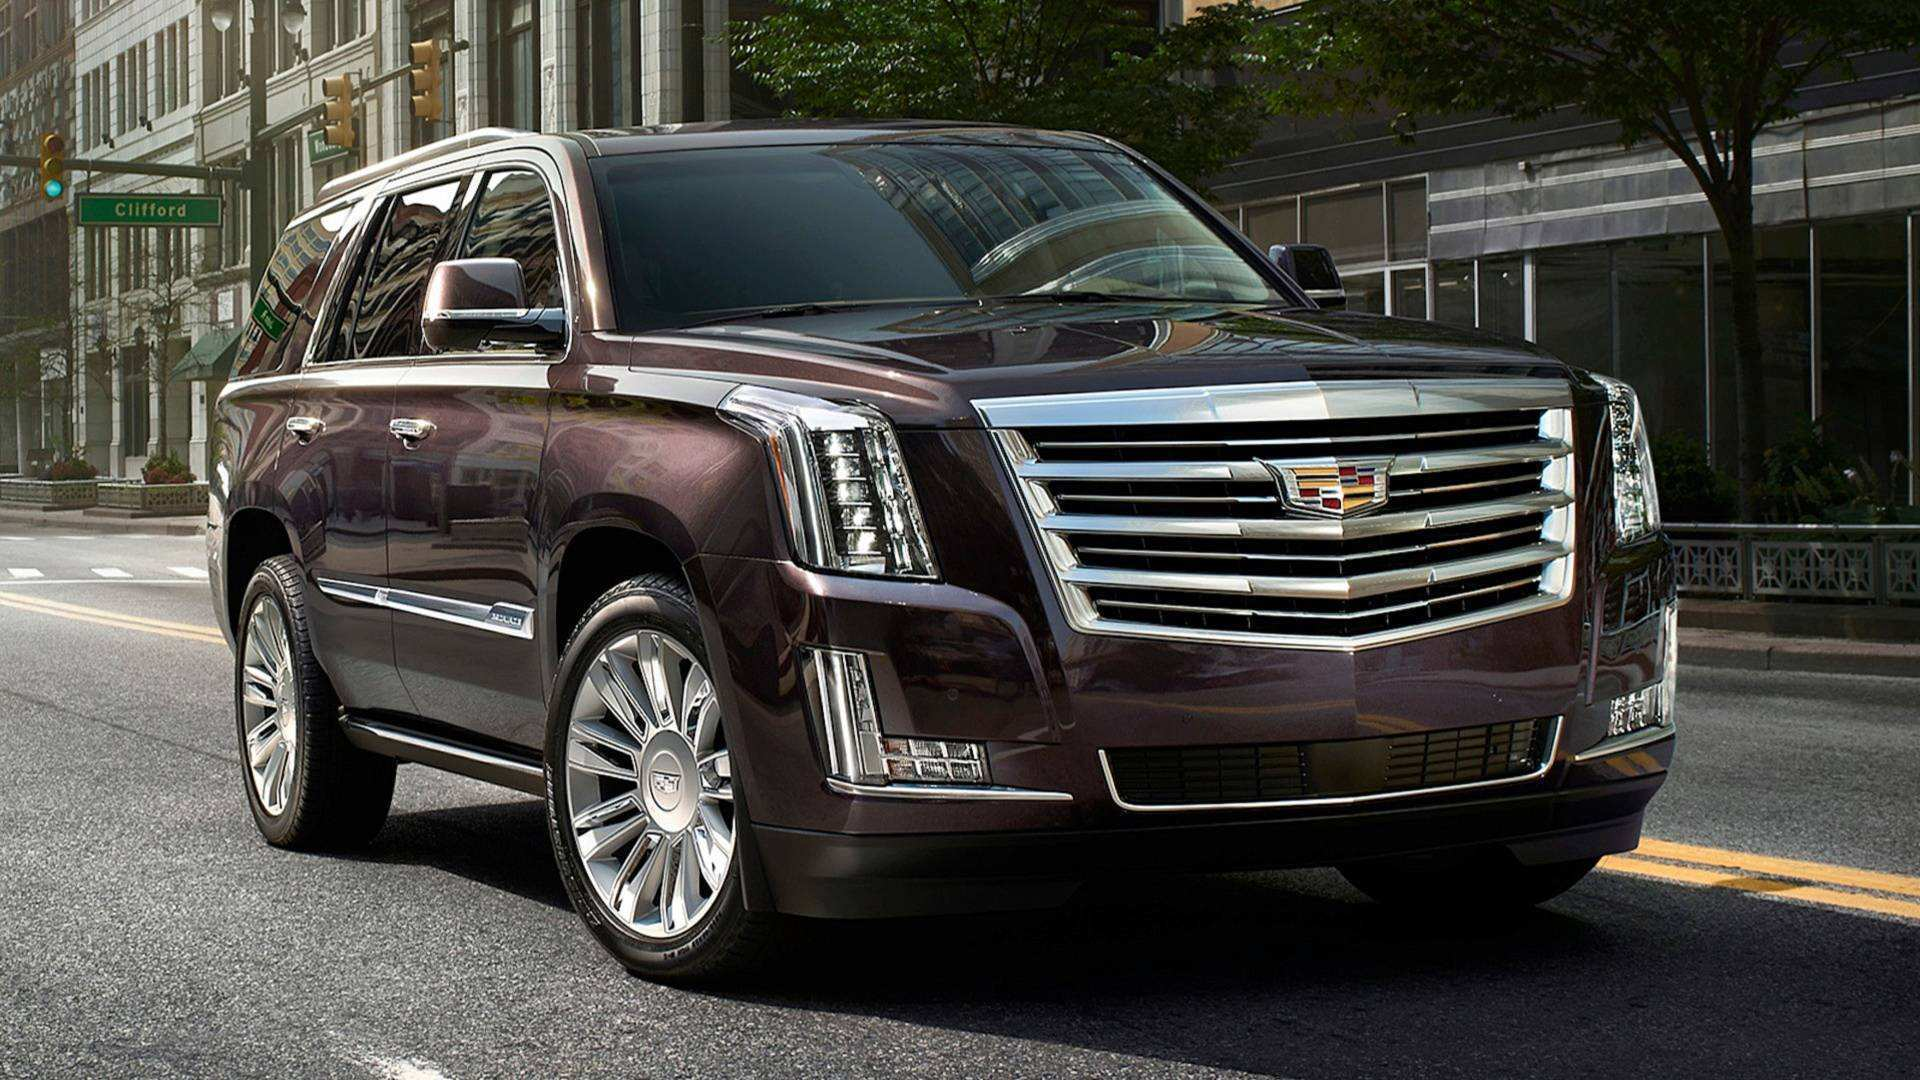 14 Gallery of 2020 Cadillac Escalade Msrp Spy Shoot for 2020 Cadillac Escalade Msrp